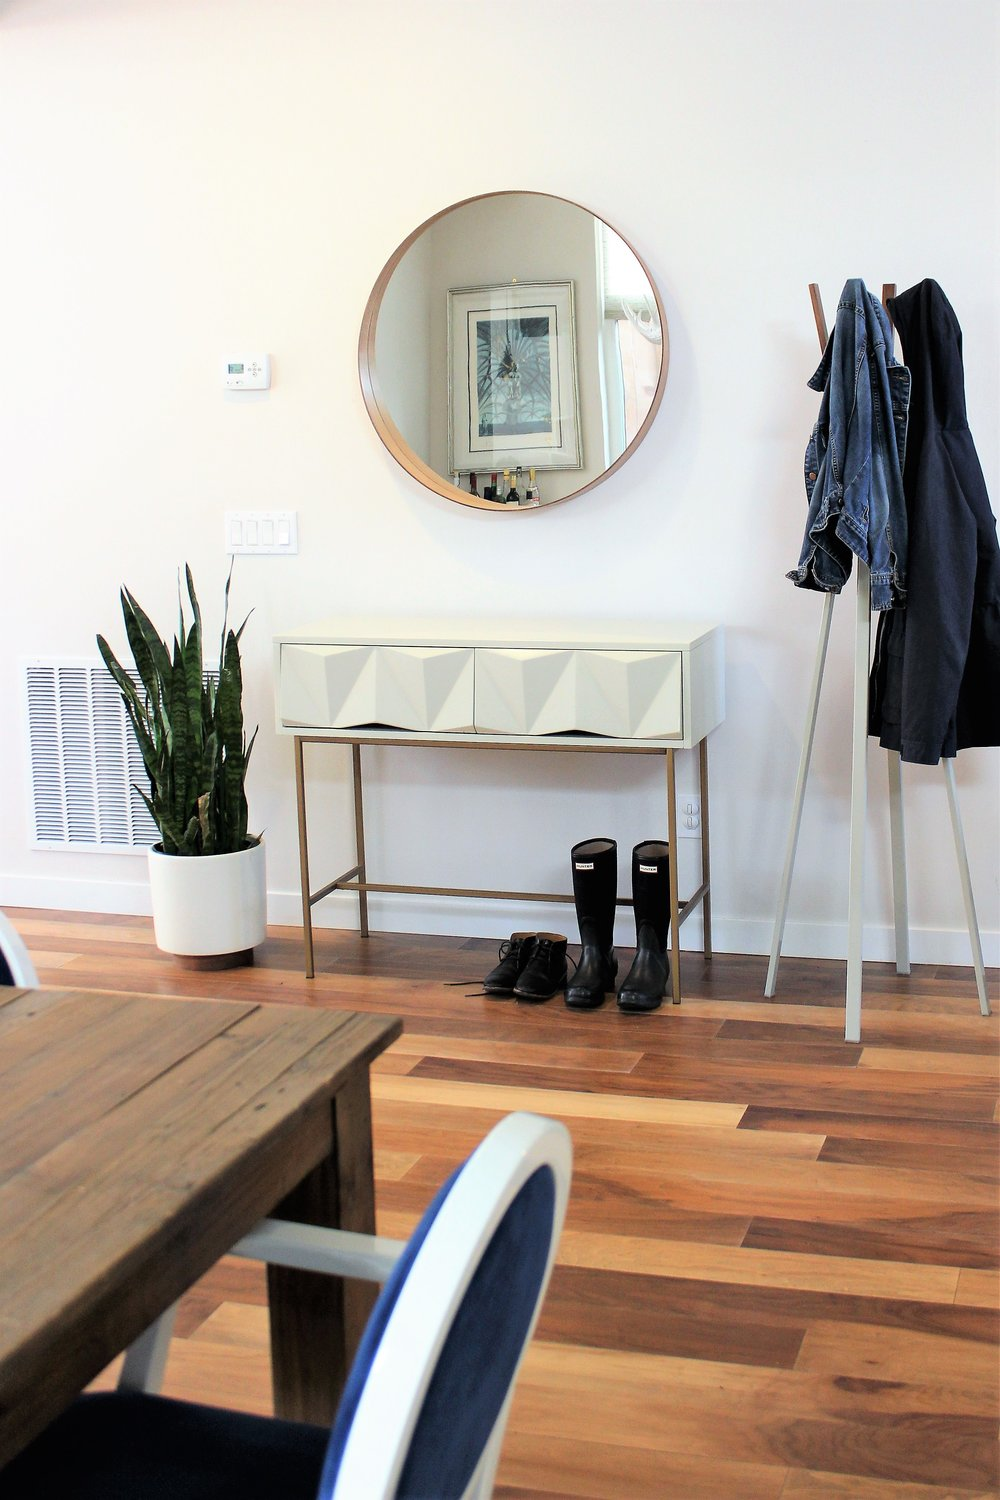 This minimalist entryway creates a space to help keep things organized when coming home from a busy day at work. This functional, yet beautiful entryway is perfect for dropping bags, keys, shoes and jackets.